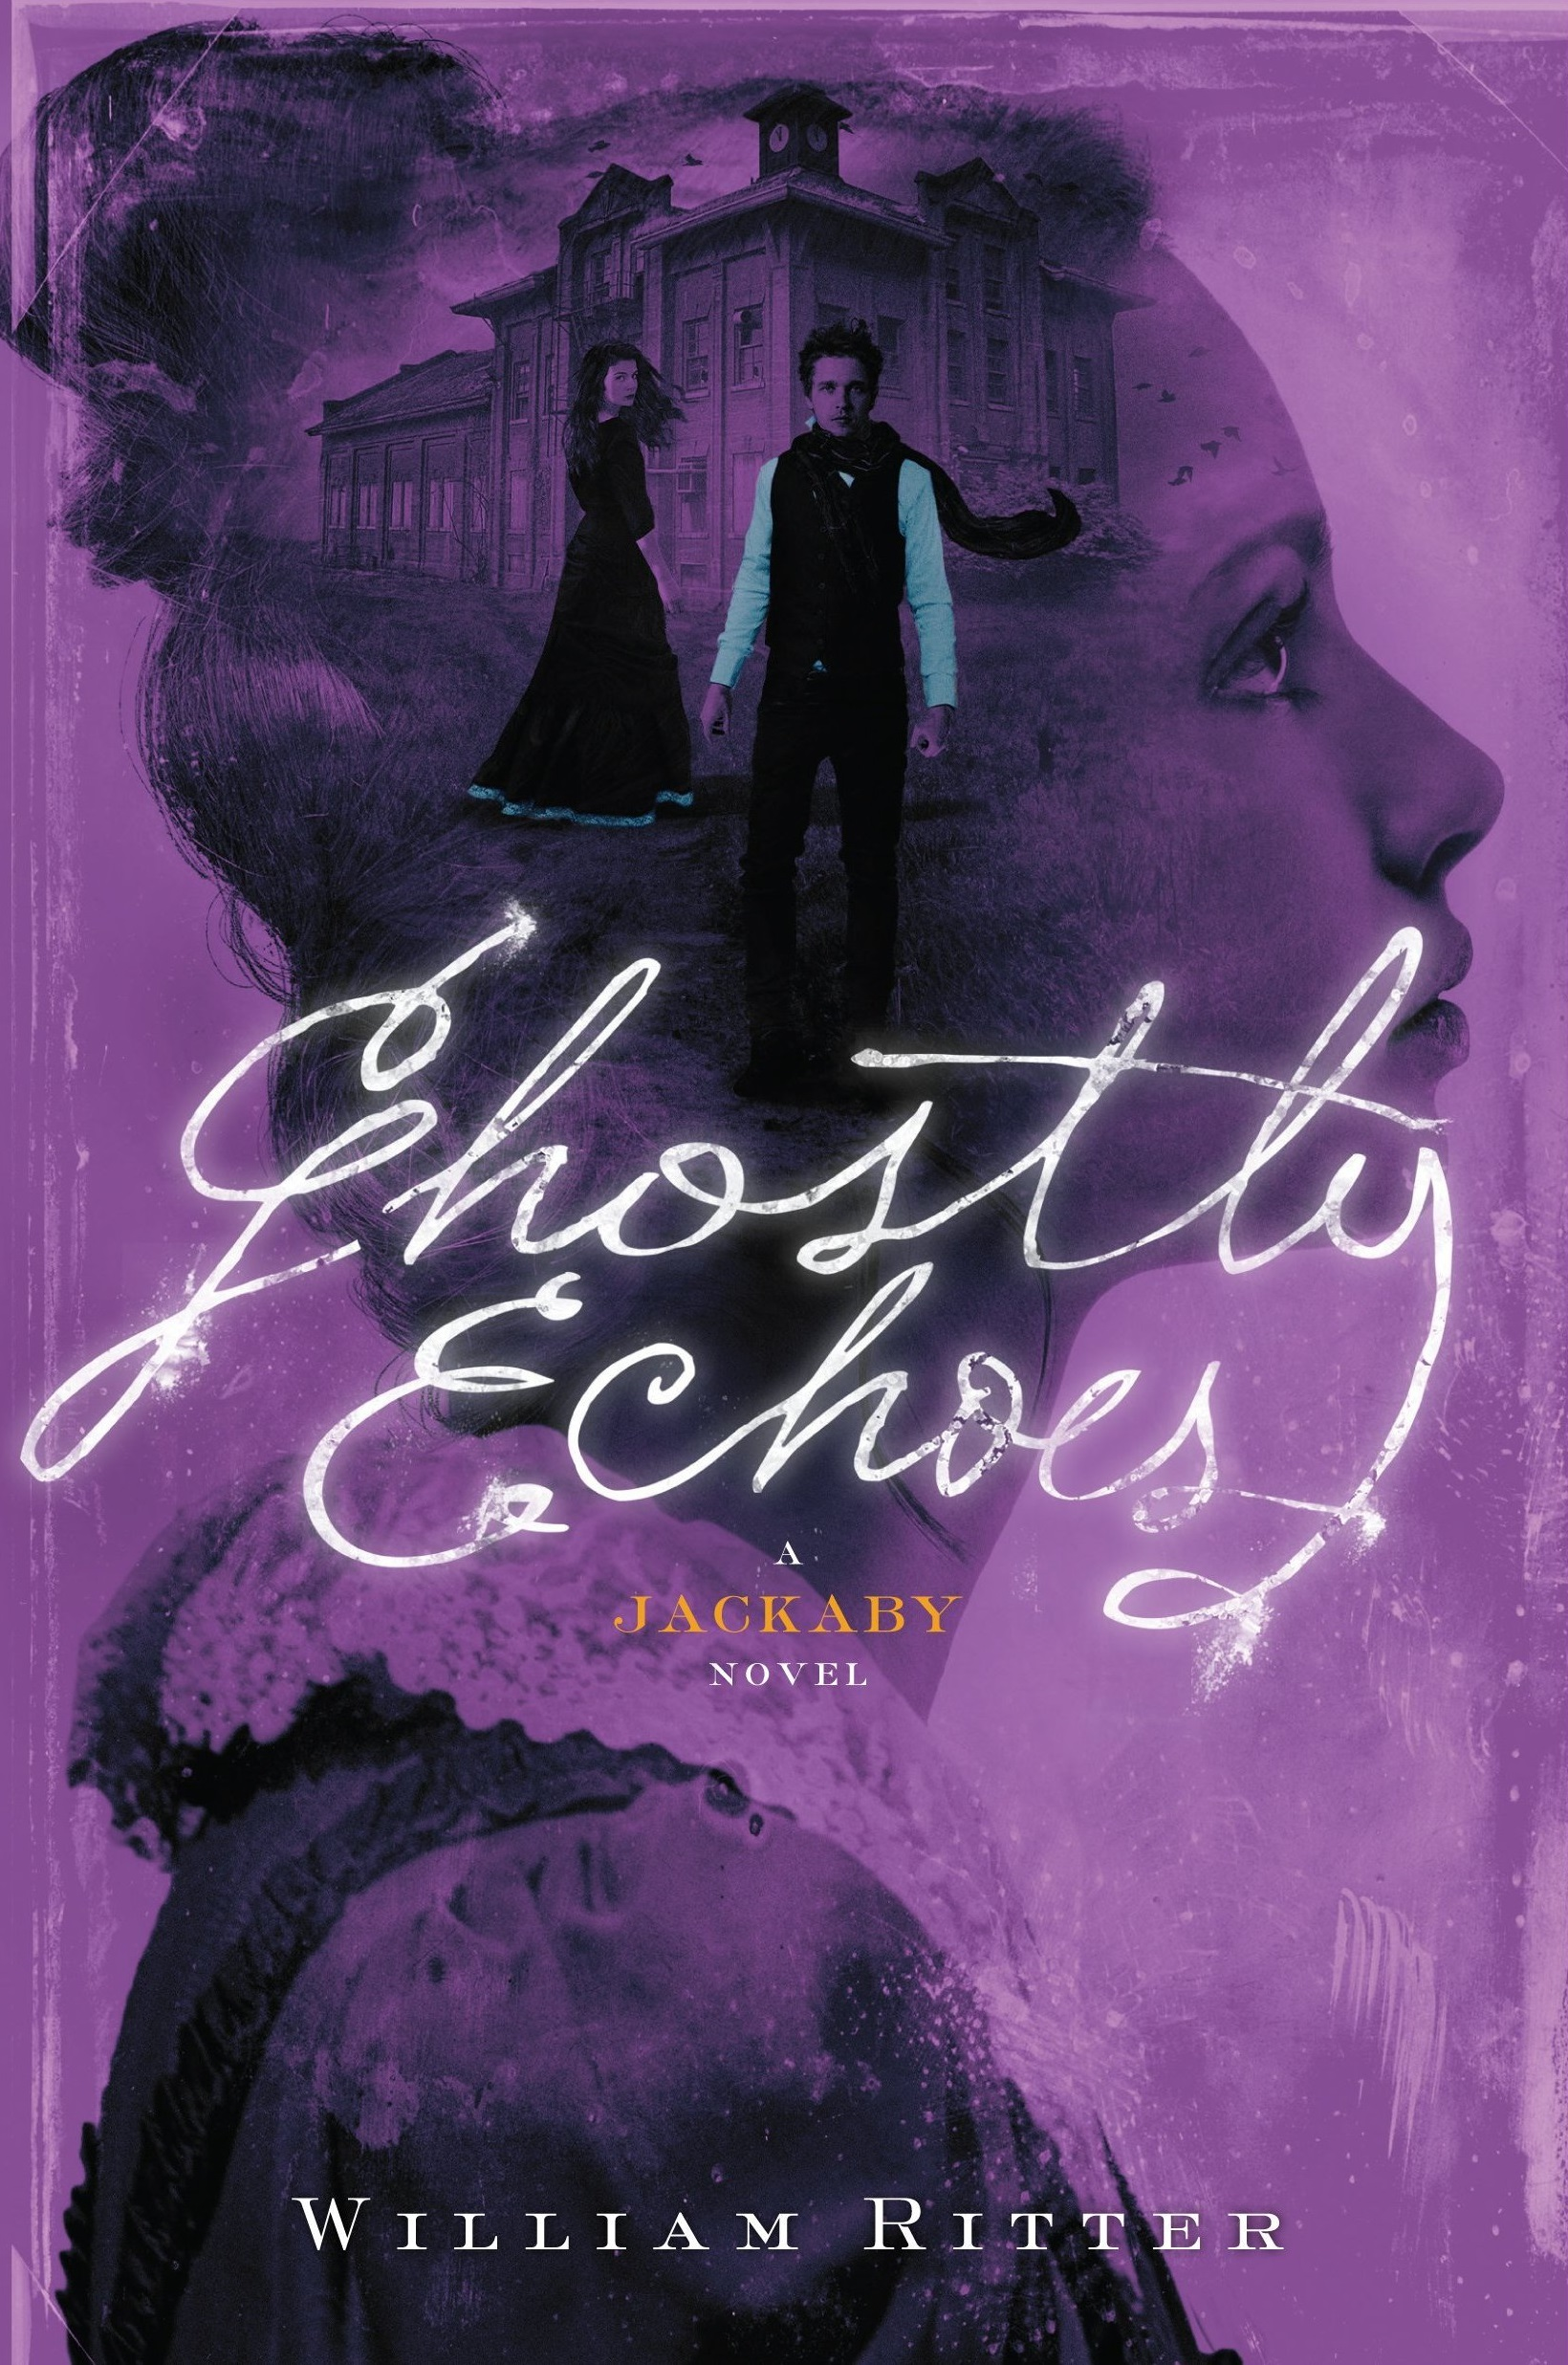 #42 Waiting on… Ghostly Echoes by William Ritter